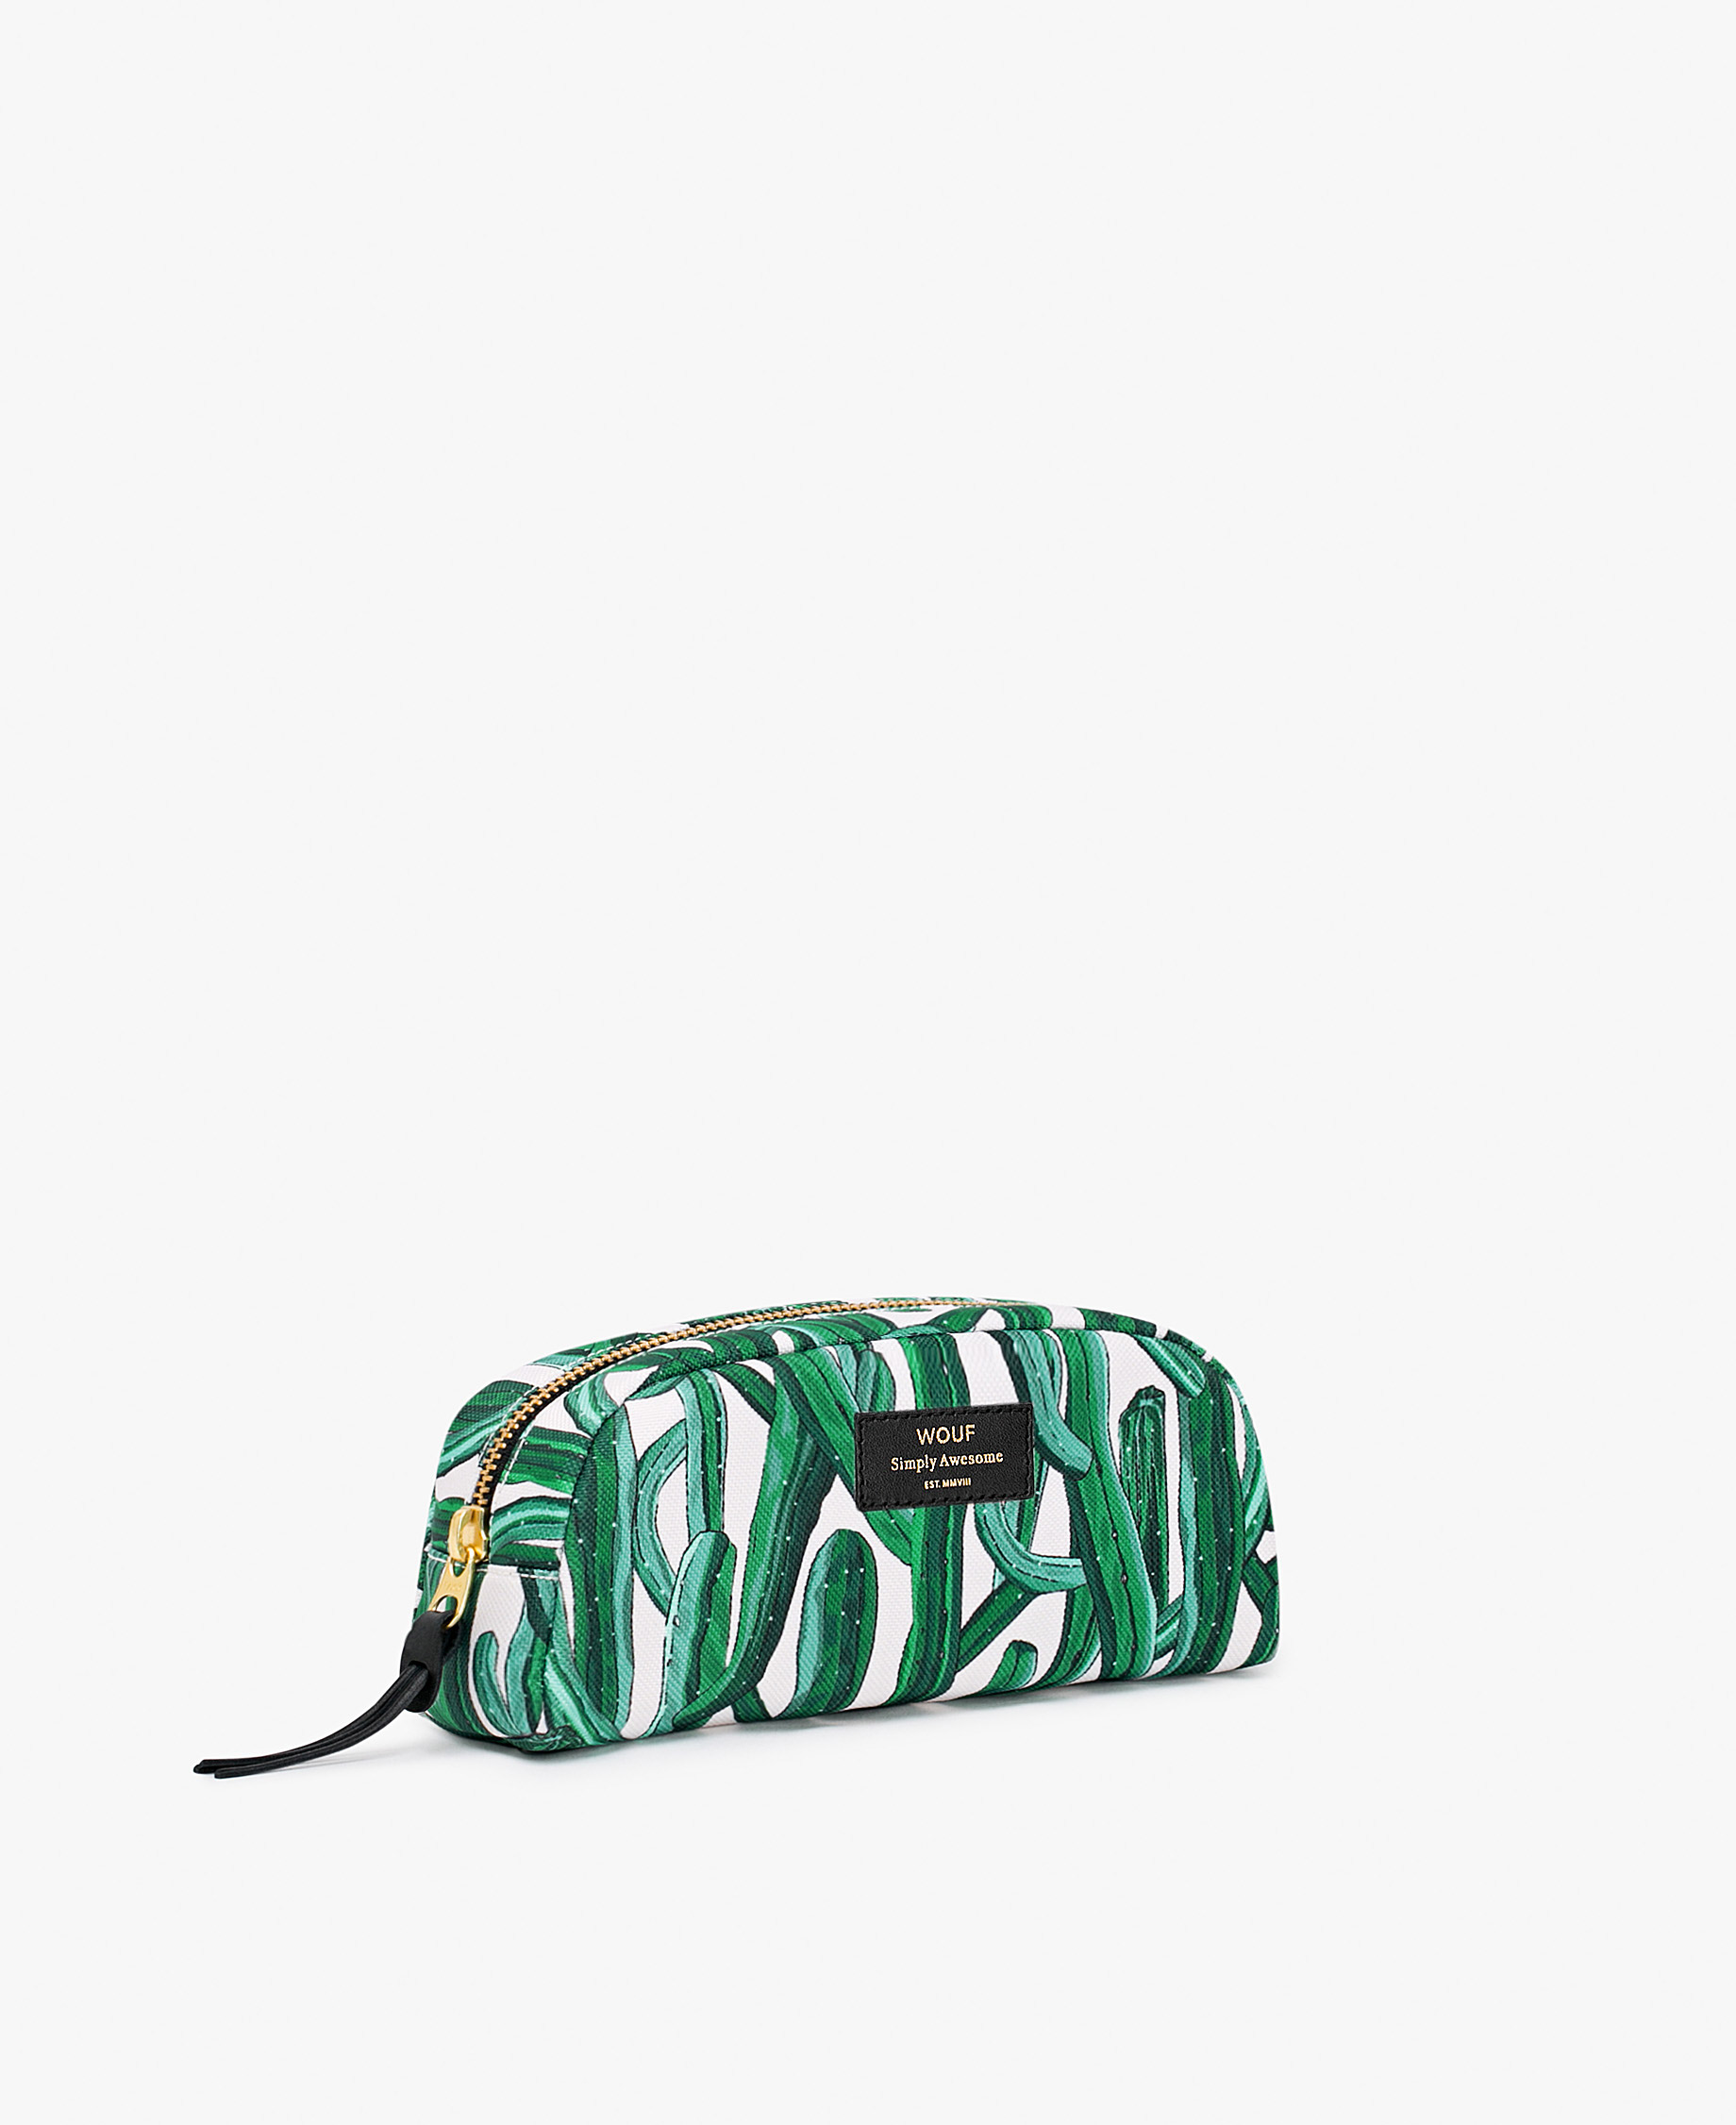 woman's pouch in white and green